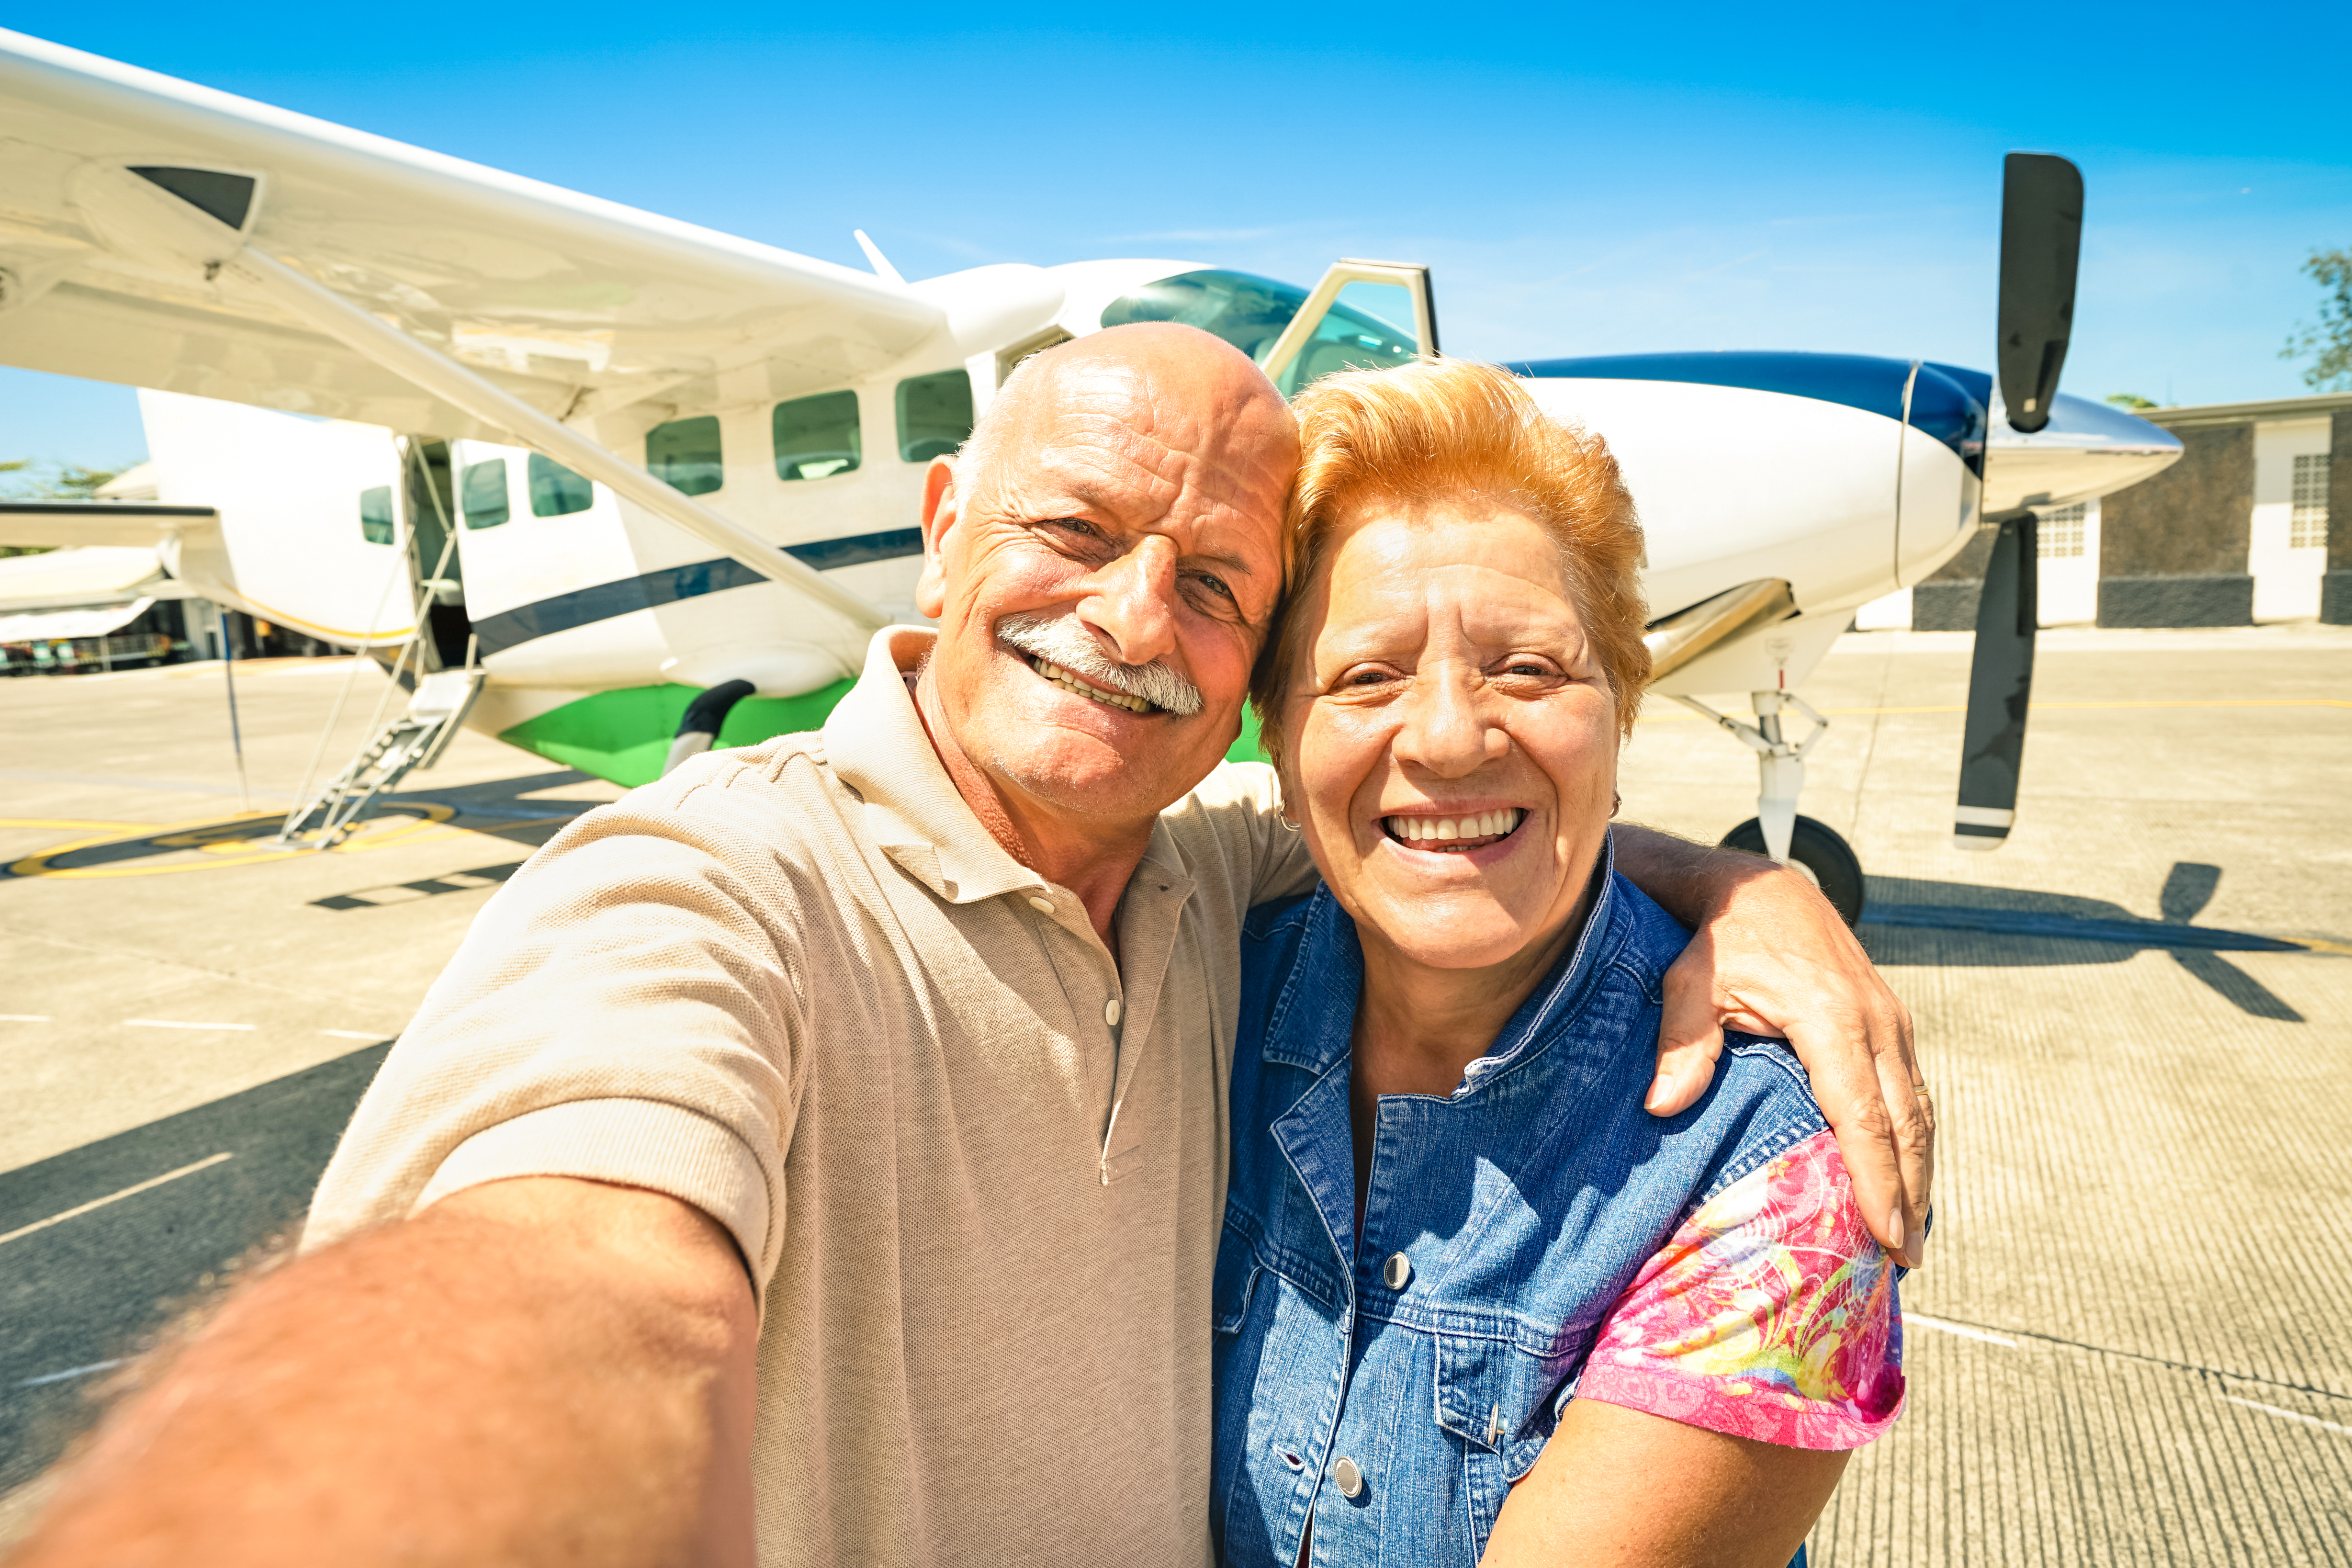 An elderly couple about to board a plane